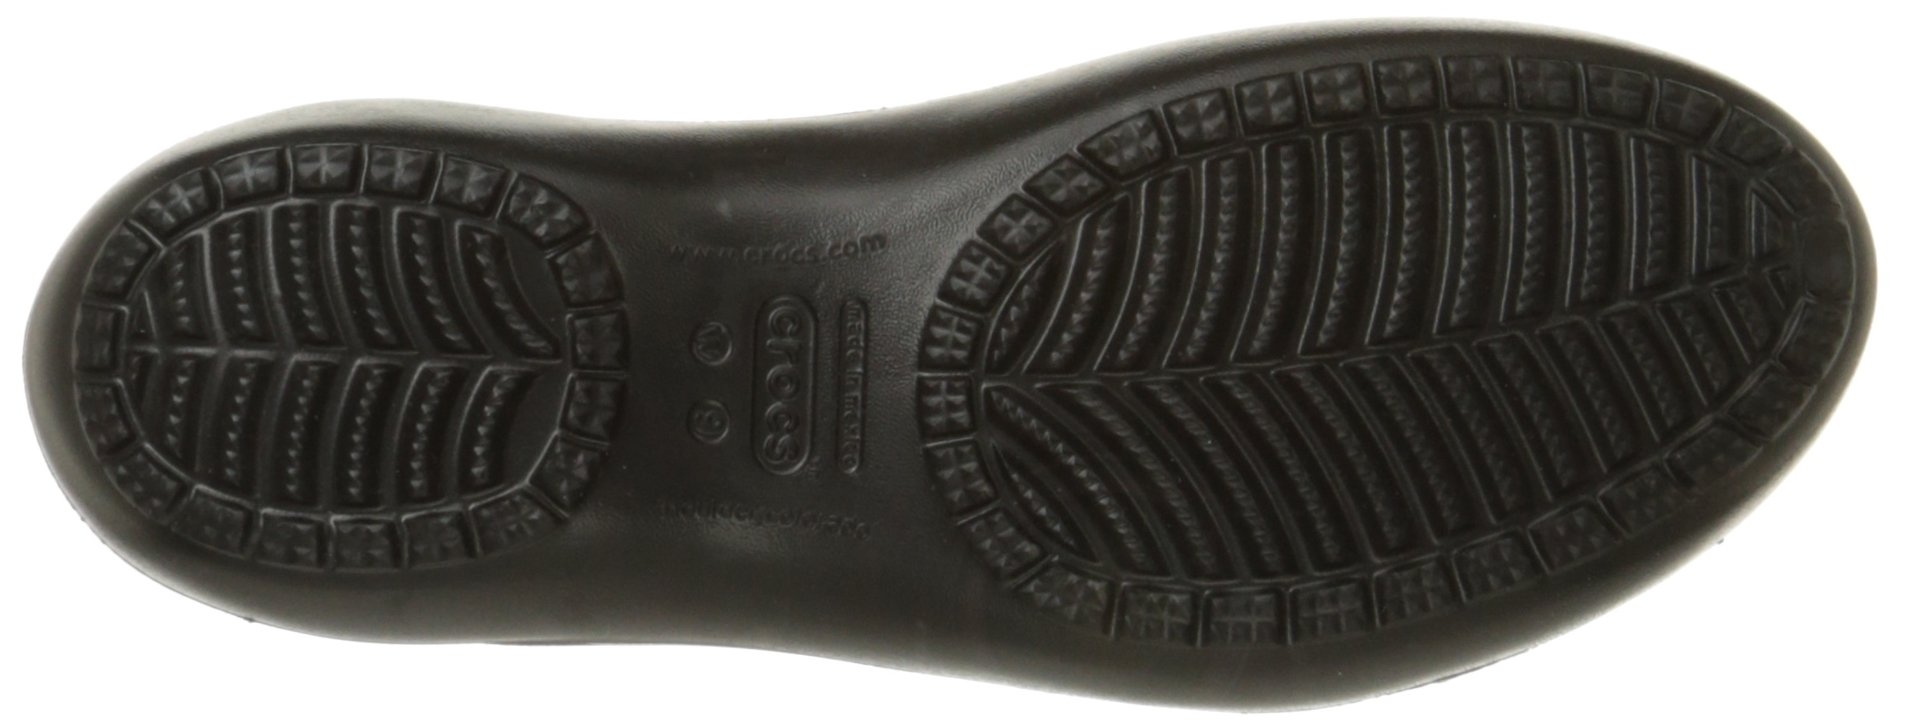 Crocs Women's Kadee Ballet Flat,Black/Black,8 M US by Crocs (Image #3)